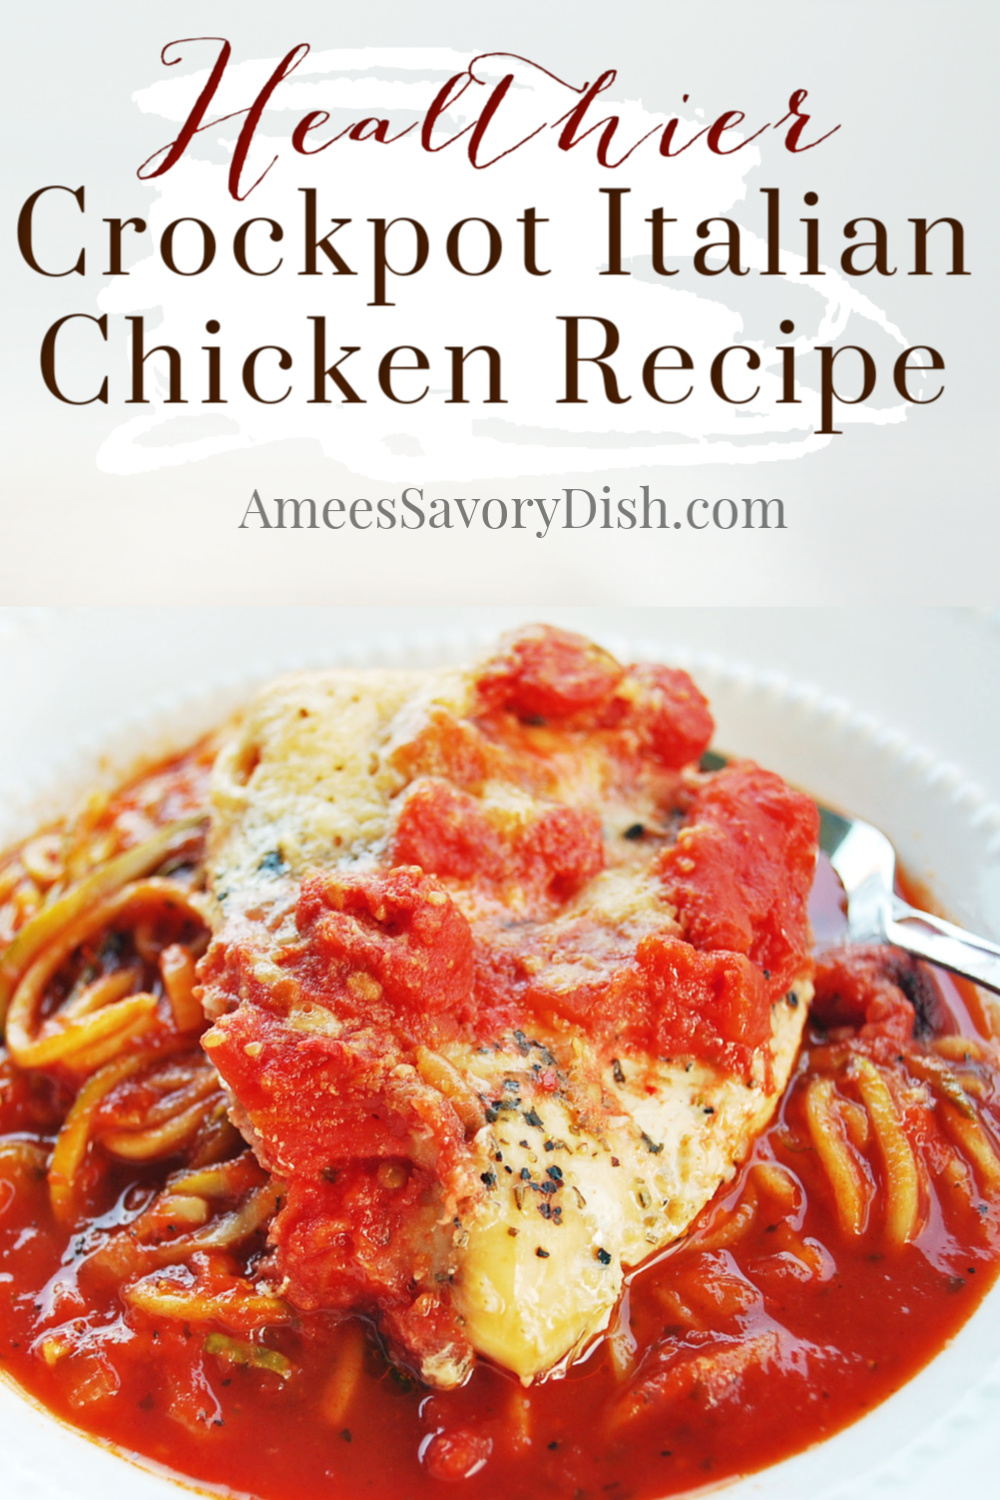 This Simple Crockpot Italian Chicken is a quick and easy nutritious crockpot recipe that the whole family will love made with boneless chicken breasts, tomatoes, herbs, and cheese.  Let your slow cooker do all the work, while you go about your day! #slowcooker #slowcookerchicken #chickenrecipe #crockpotchicken #cleaneating #healthychickenrecipe via @Ameessavorydish